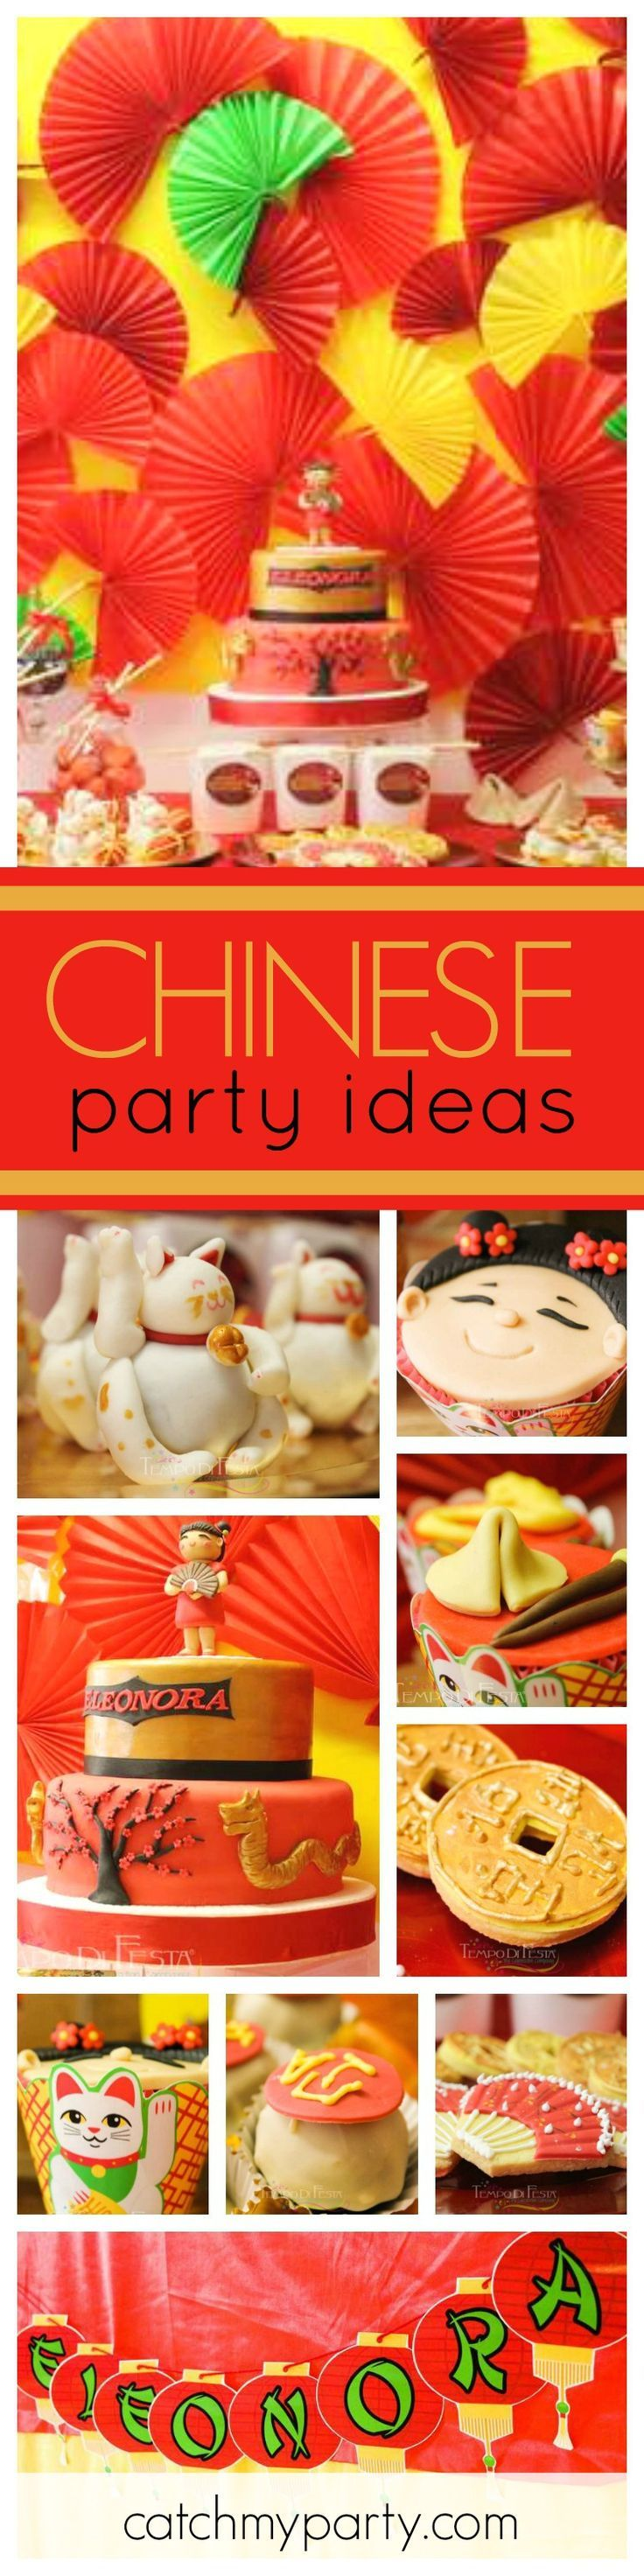 best 25+ chinese party decorations ideas only on pinterest